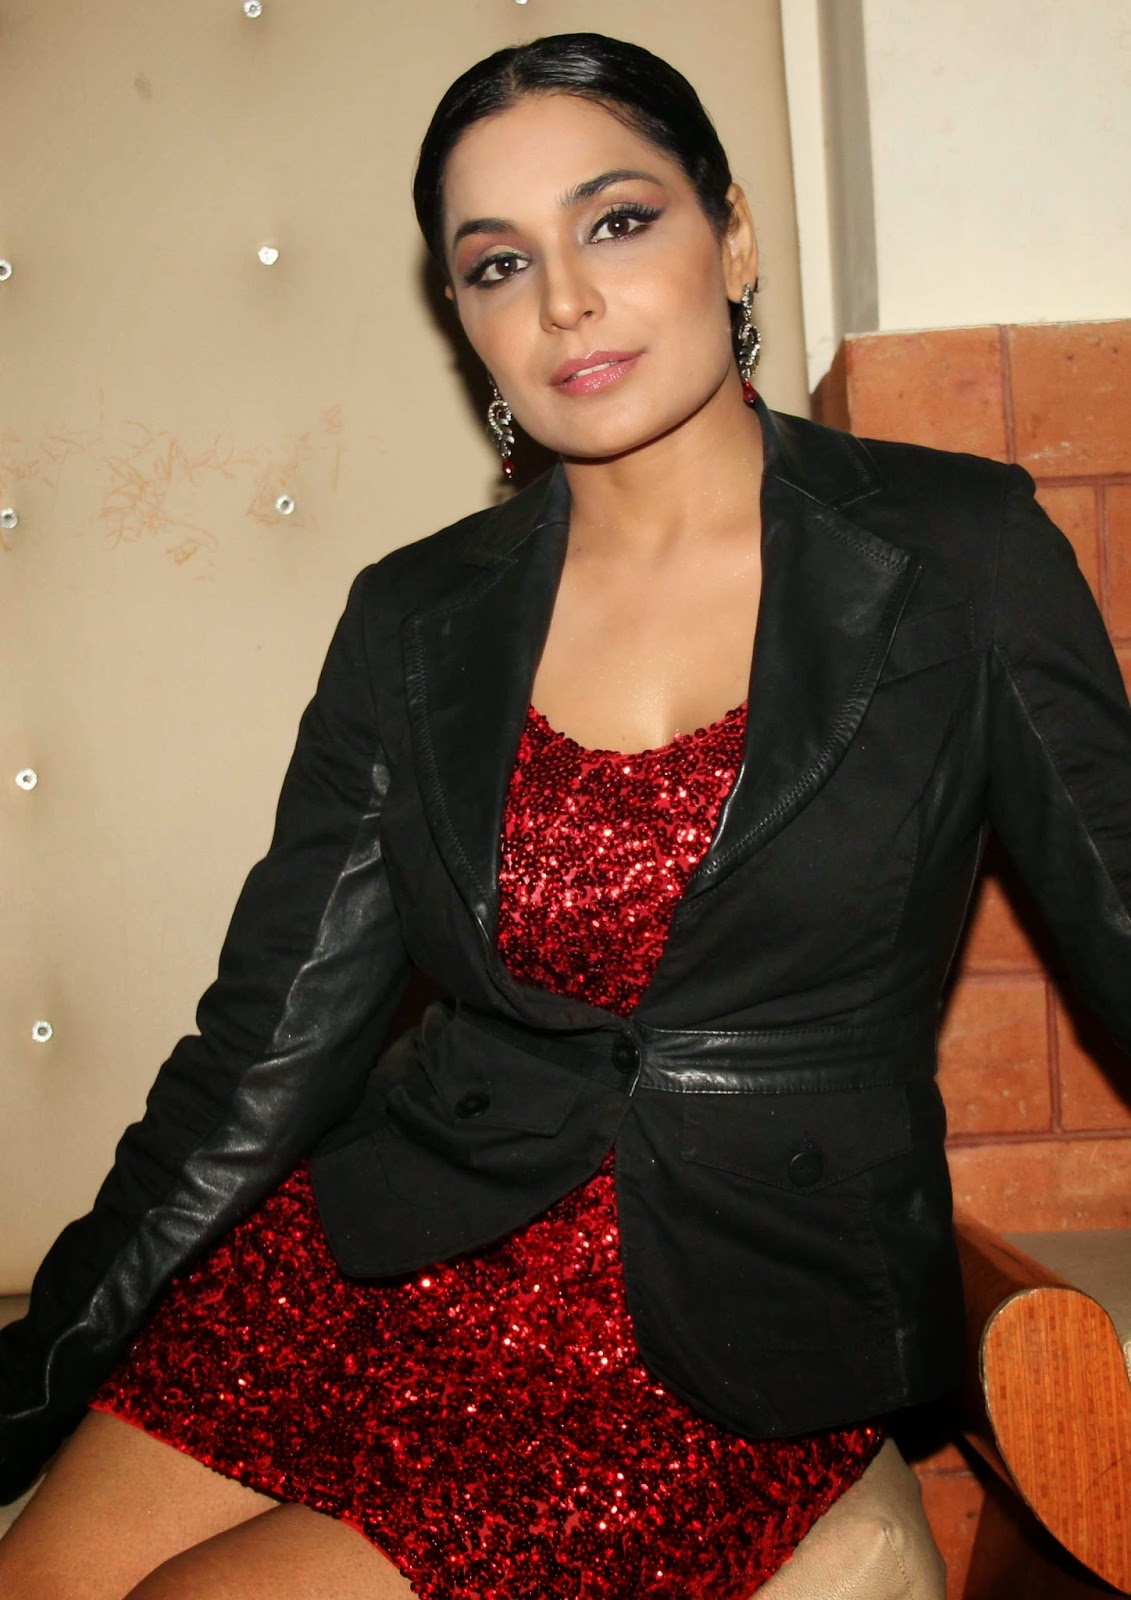 High Quality Bollywood Celebrity Pictures Pakistani -4845